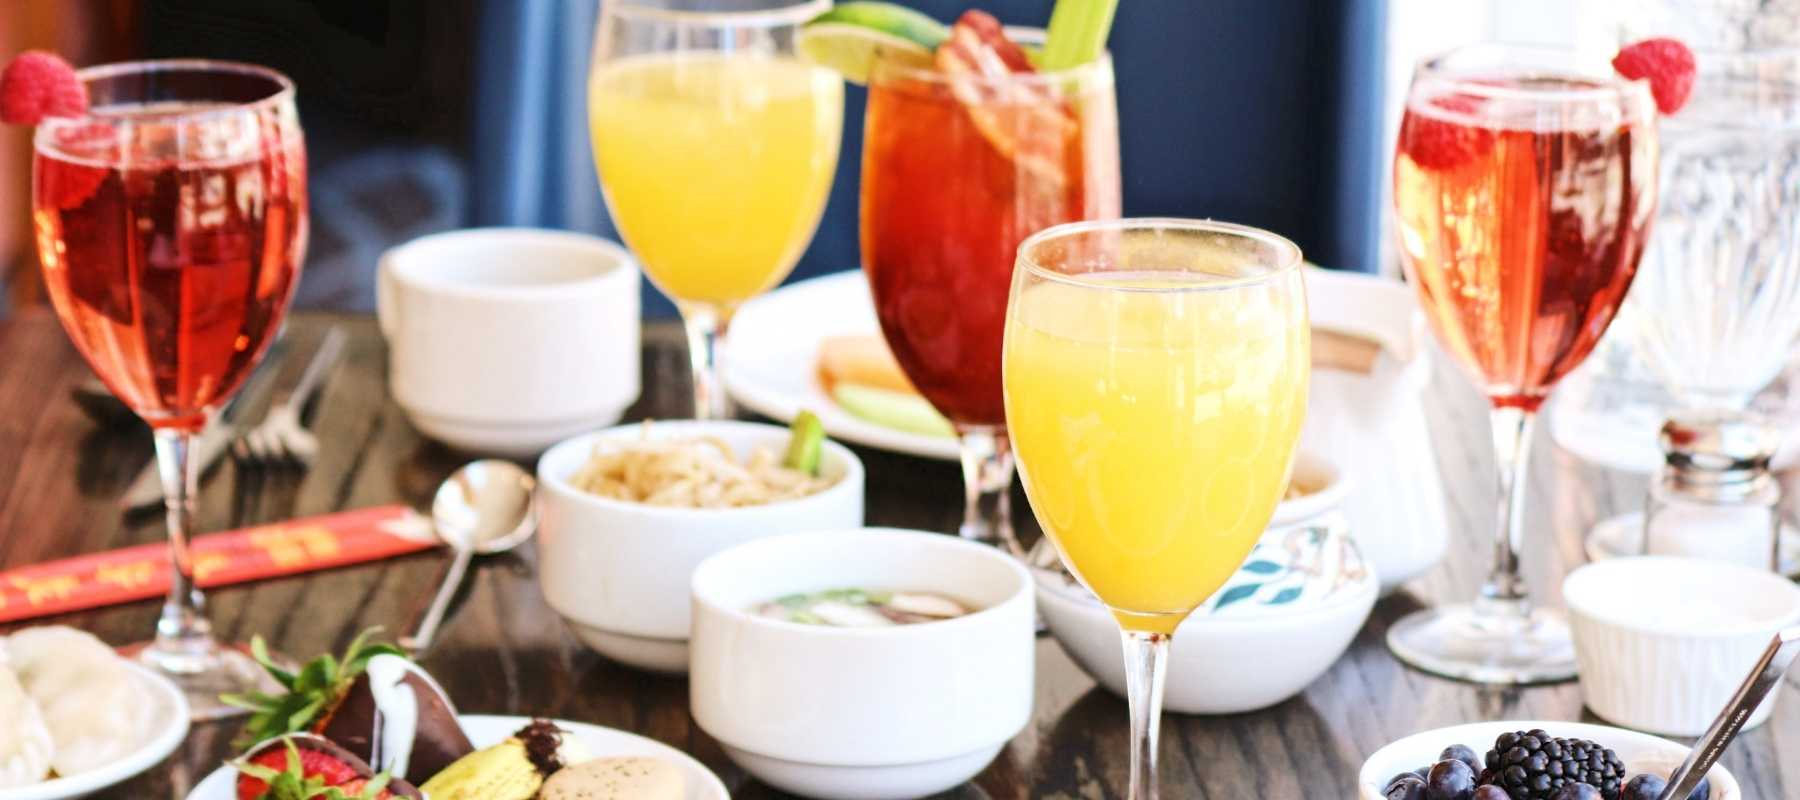 mimosa - diy brunch wedding how to guide